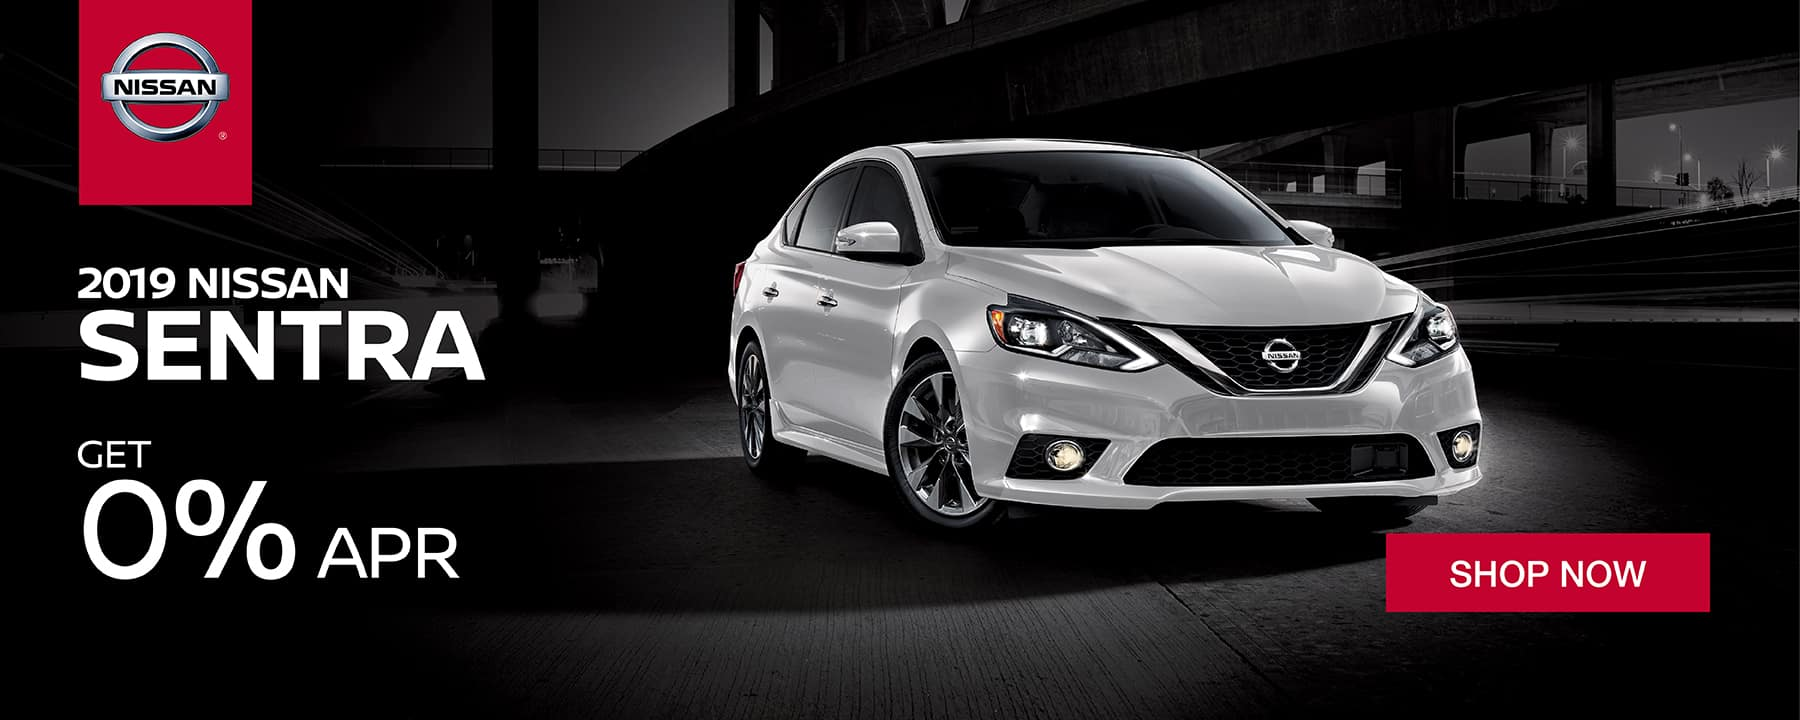 Shop the 2019 Nissan Sentra NOW at Star Nissan!